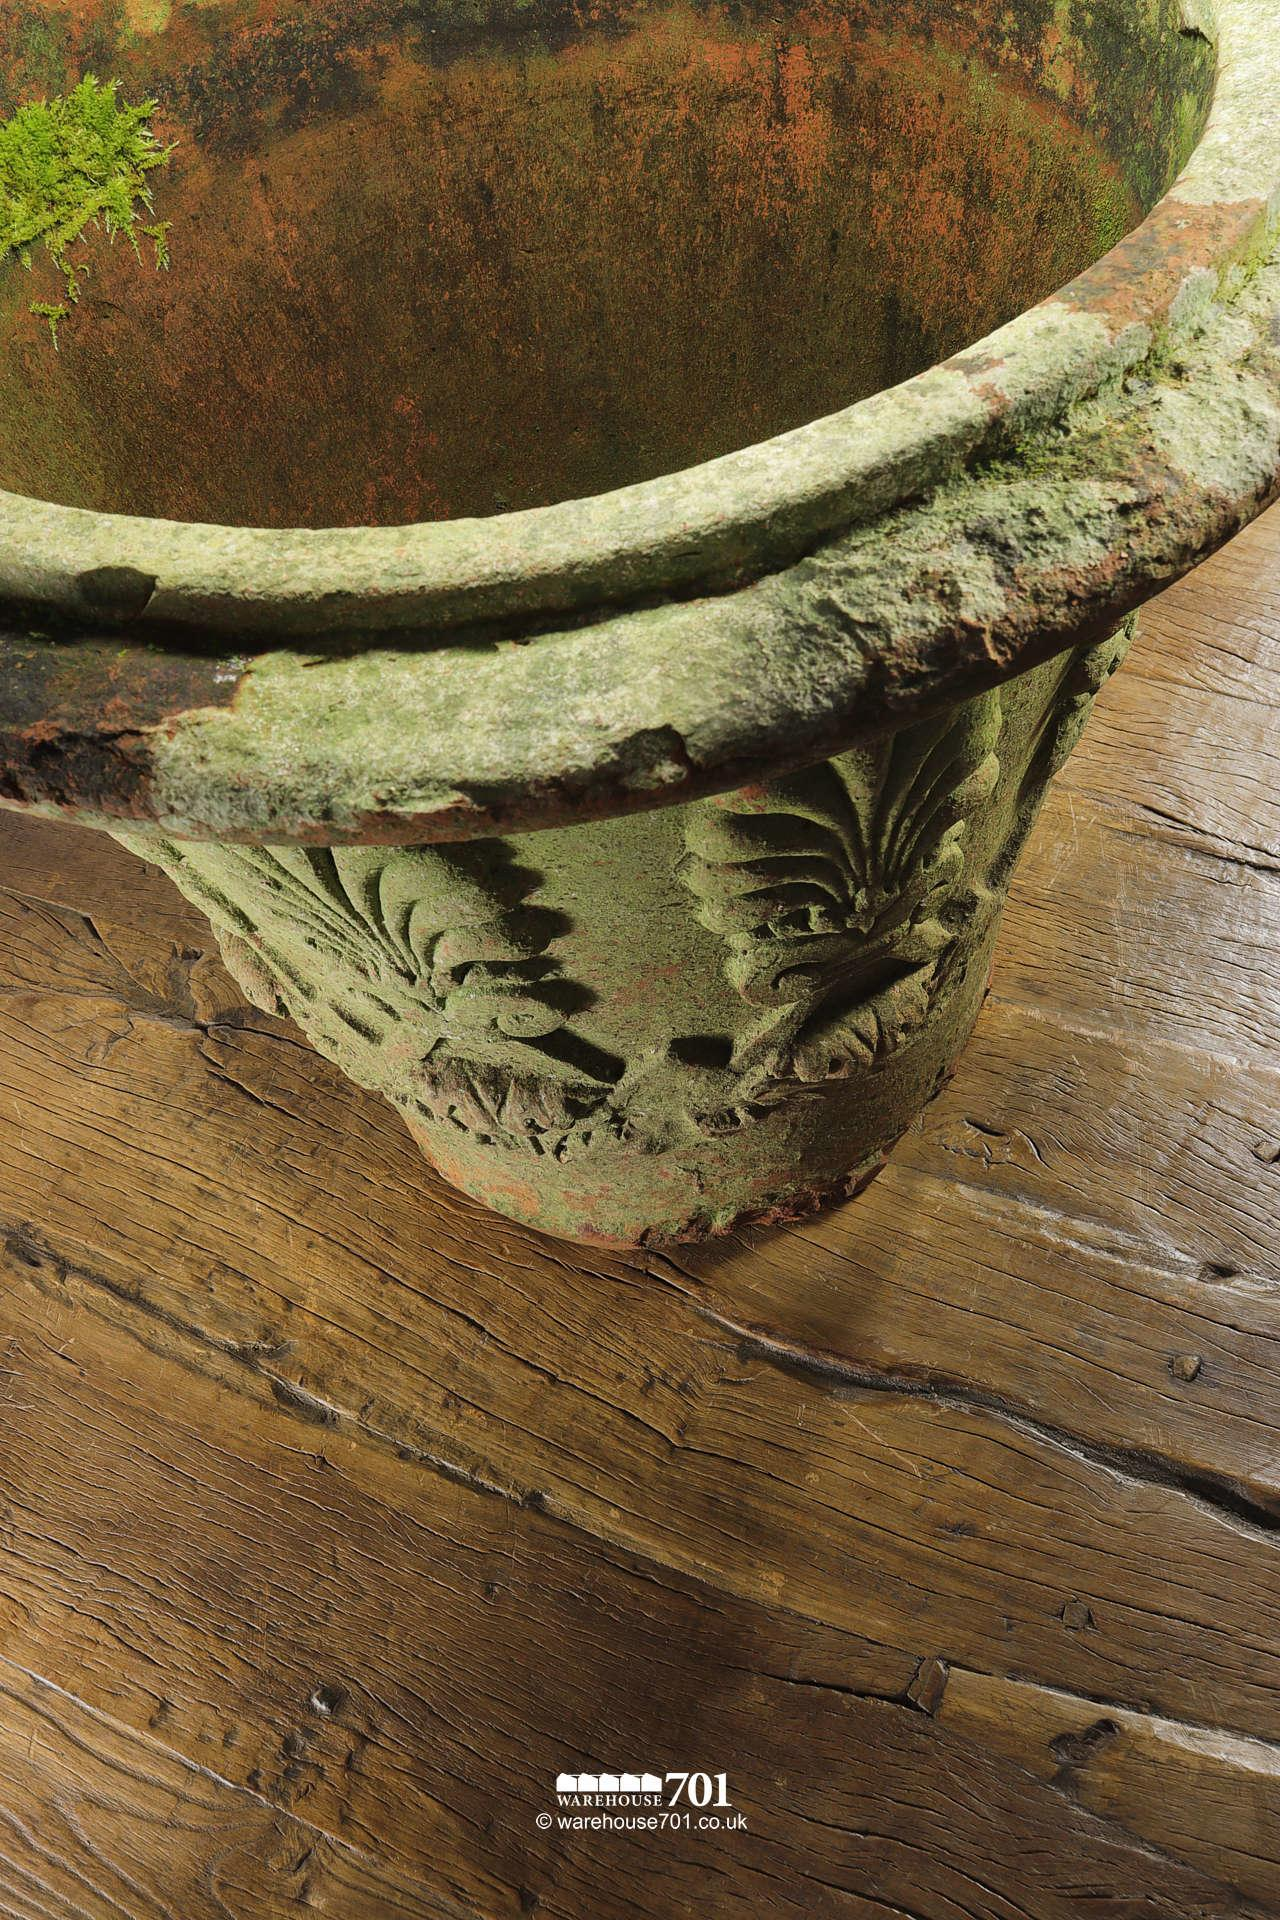 Old and Rare Large Terracotta or Clay Fern Pattern Planter or Pot #3